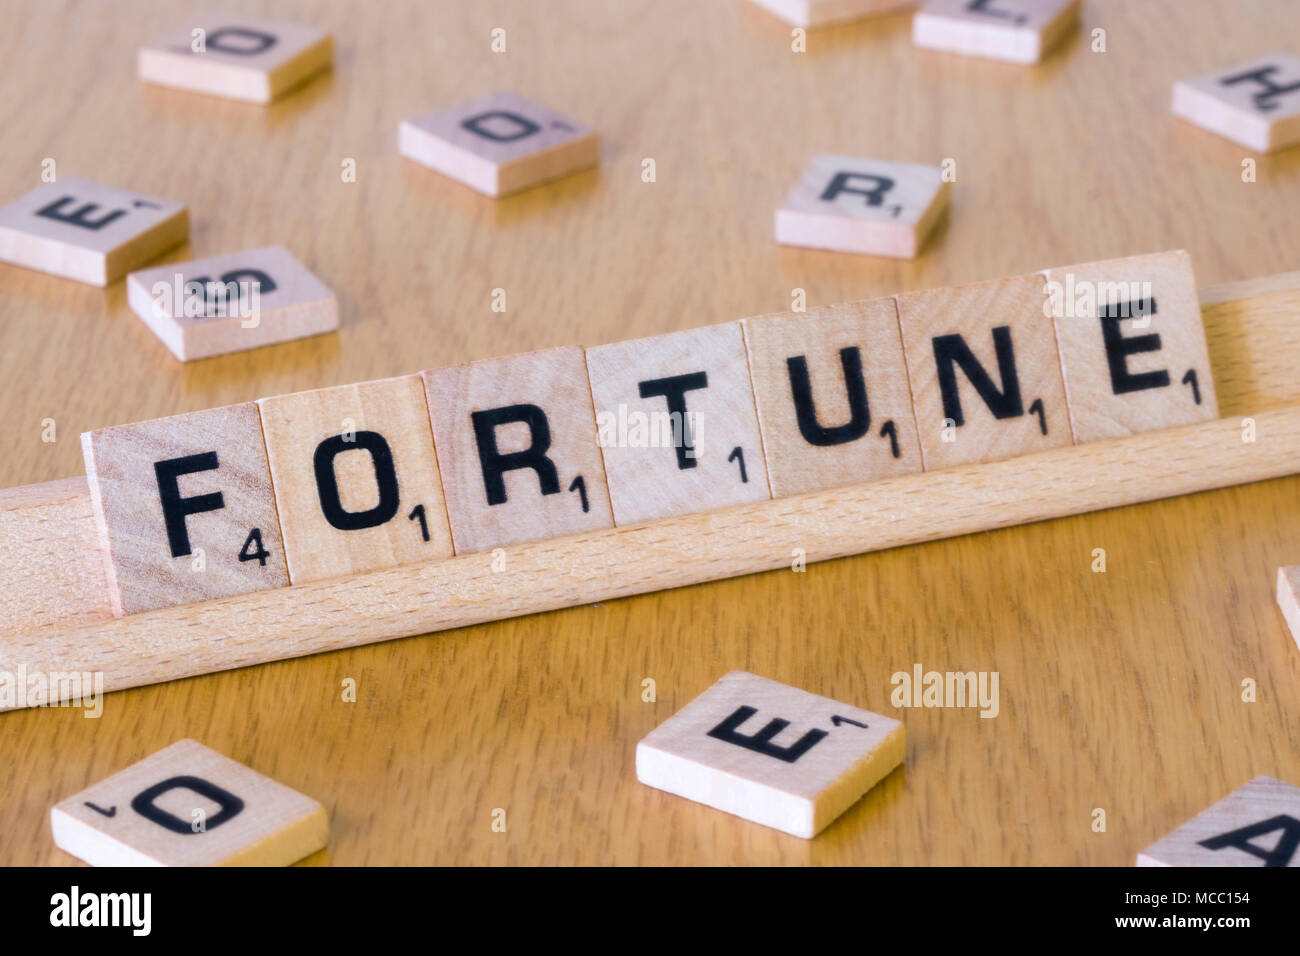 Scrabble letters spelling out the word Fortune - Stock Image